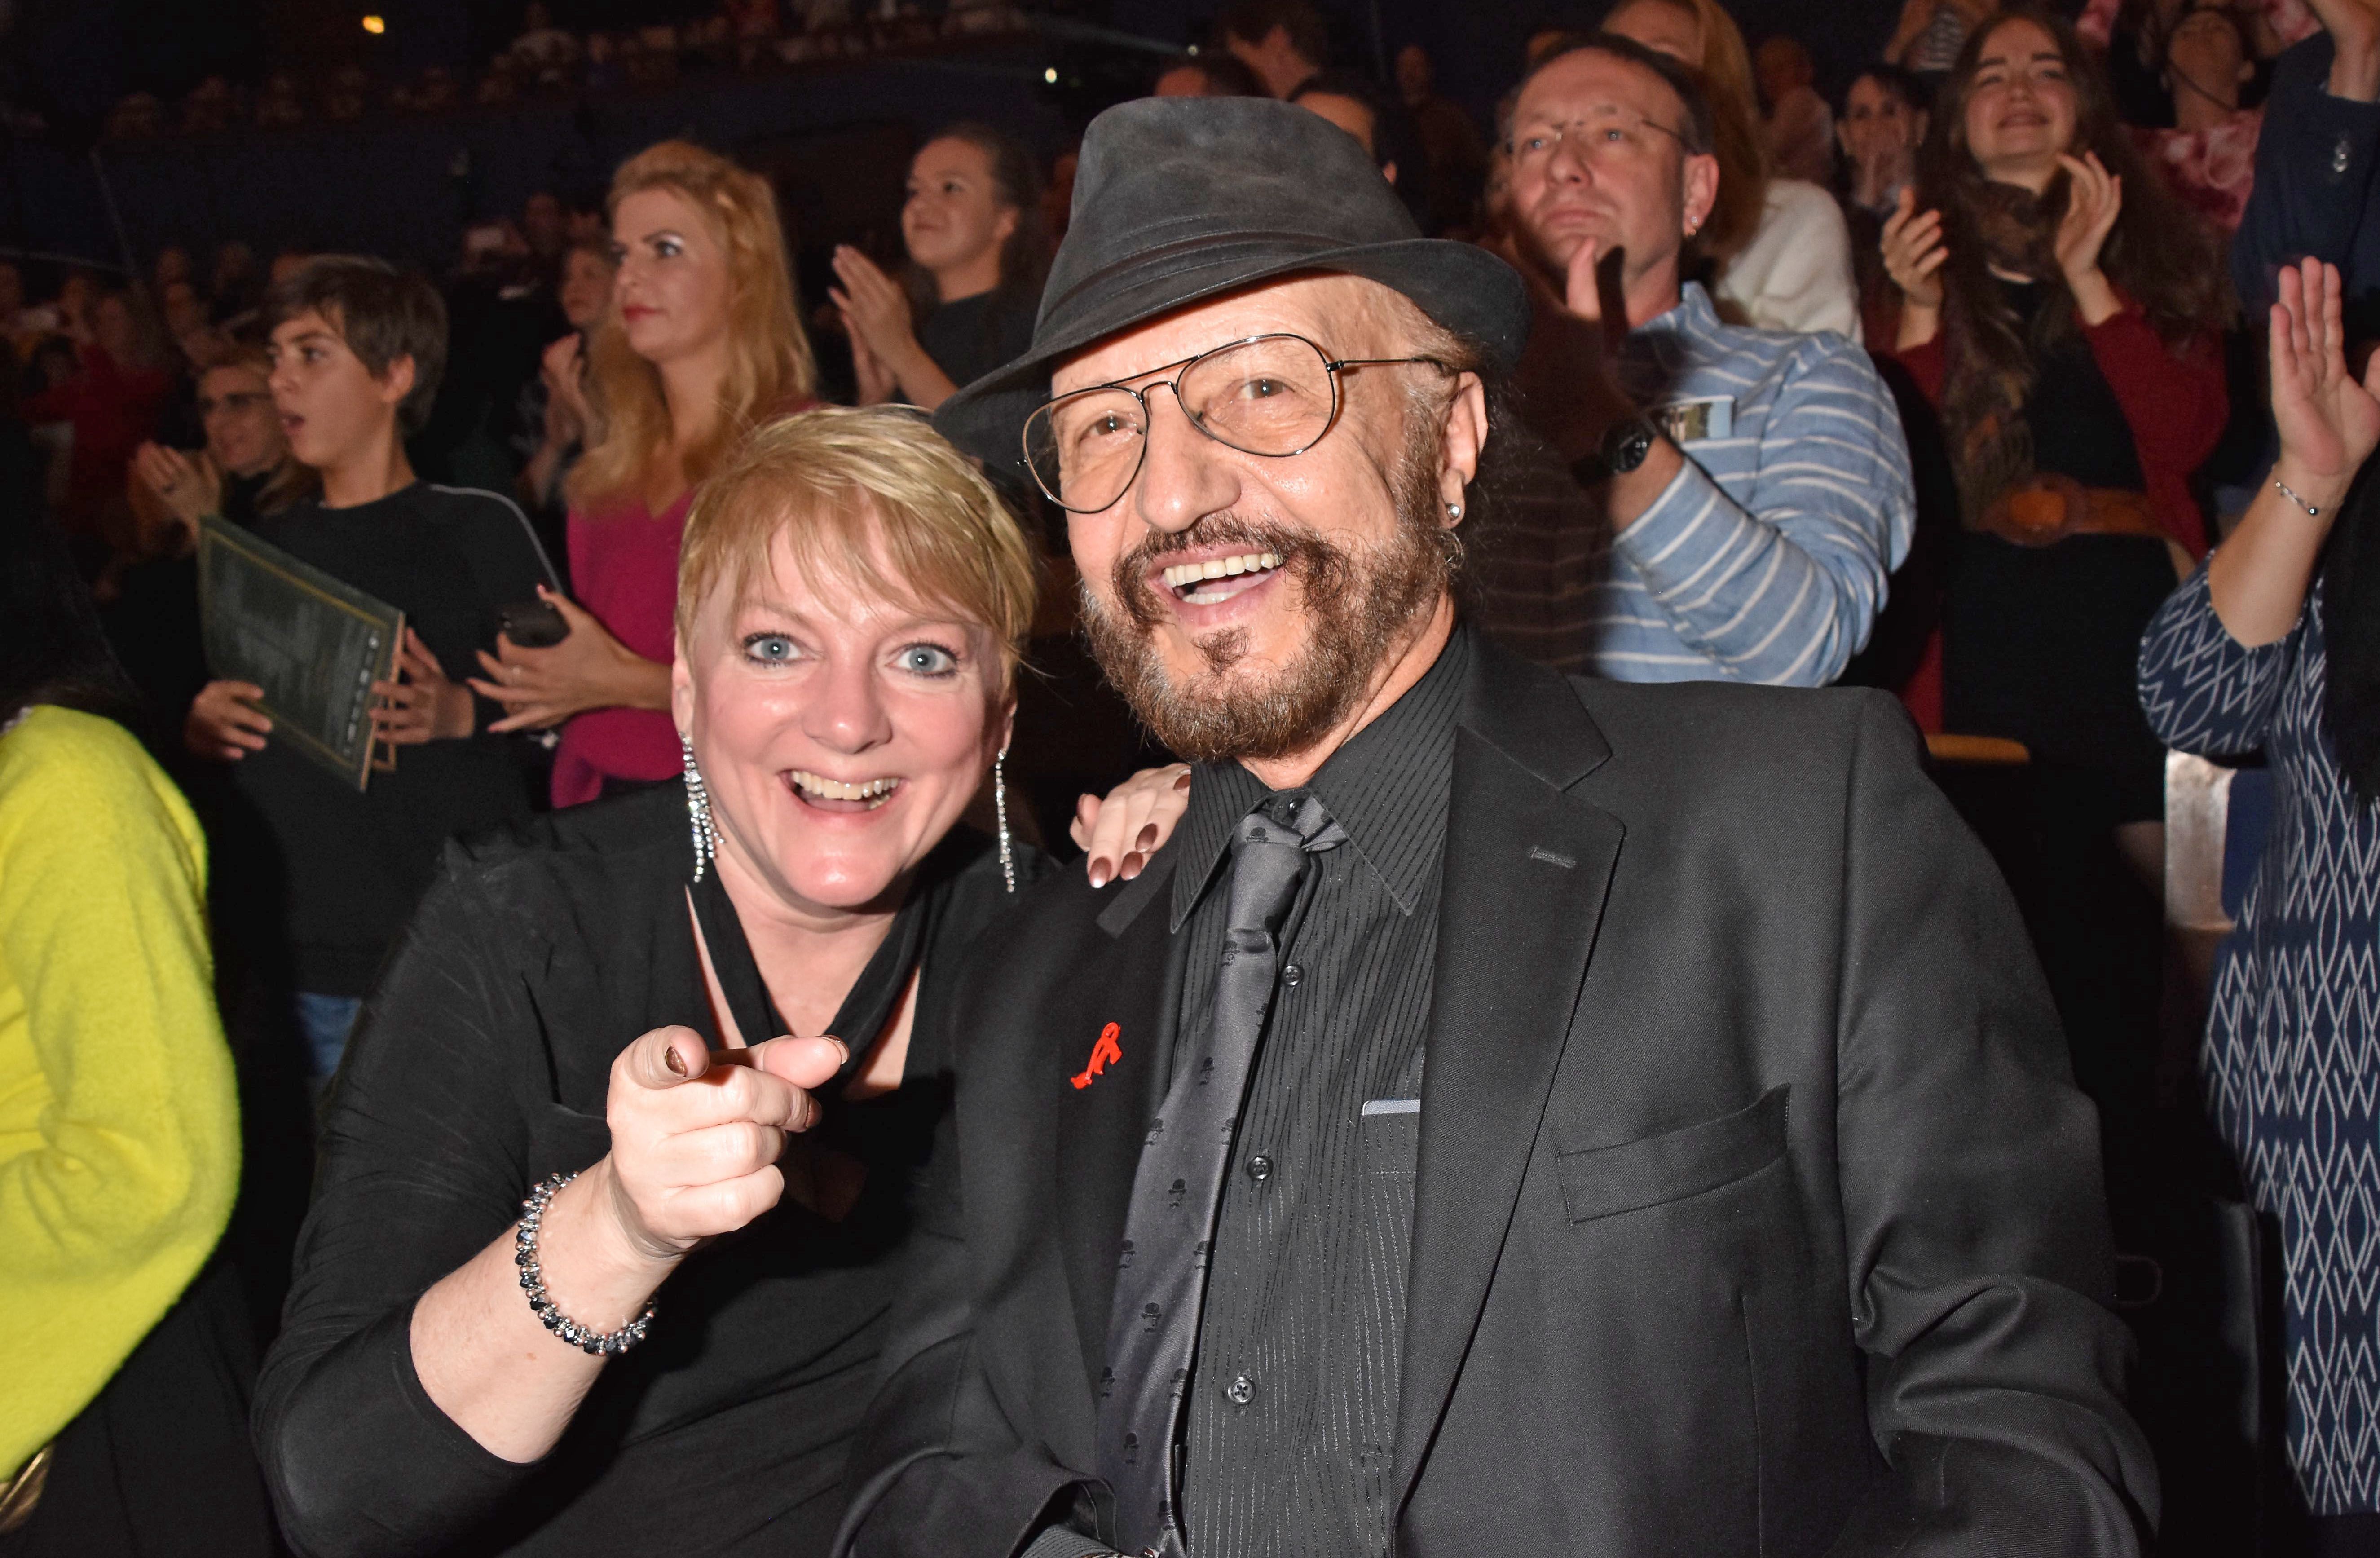 """Alison Arngrim and Robert Paul Schoonover at the Young Show """"Im Labyrinth der Buecher"""" on November 17, 2019, in Berlin, Germany 